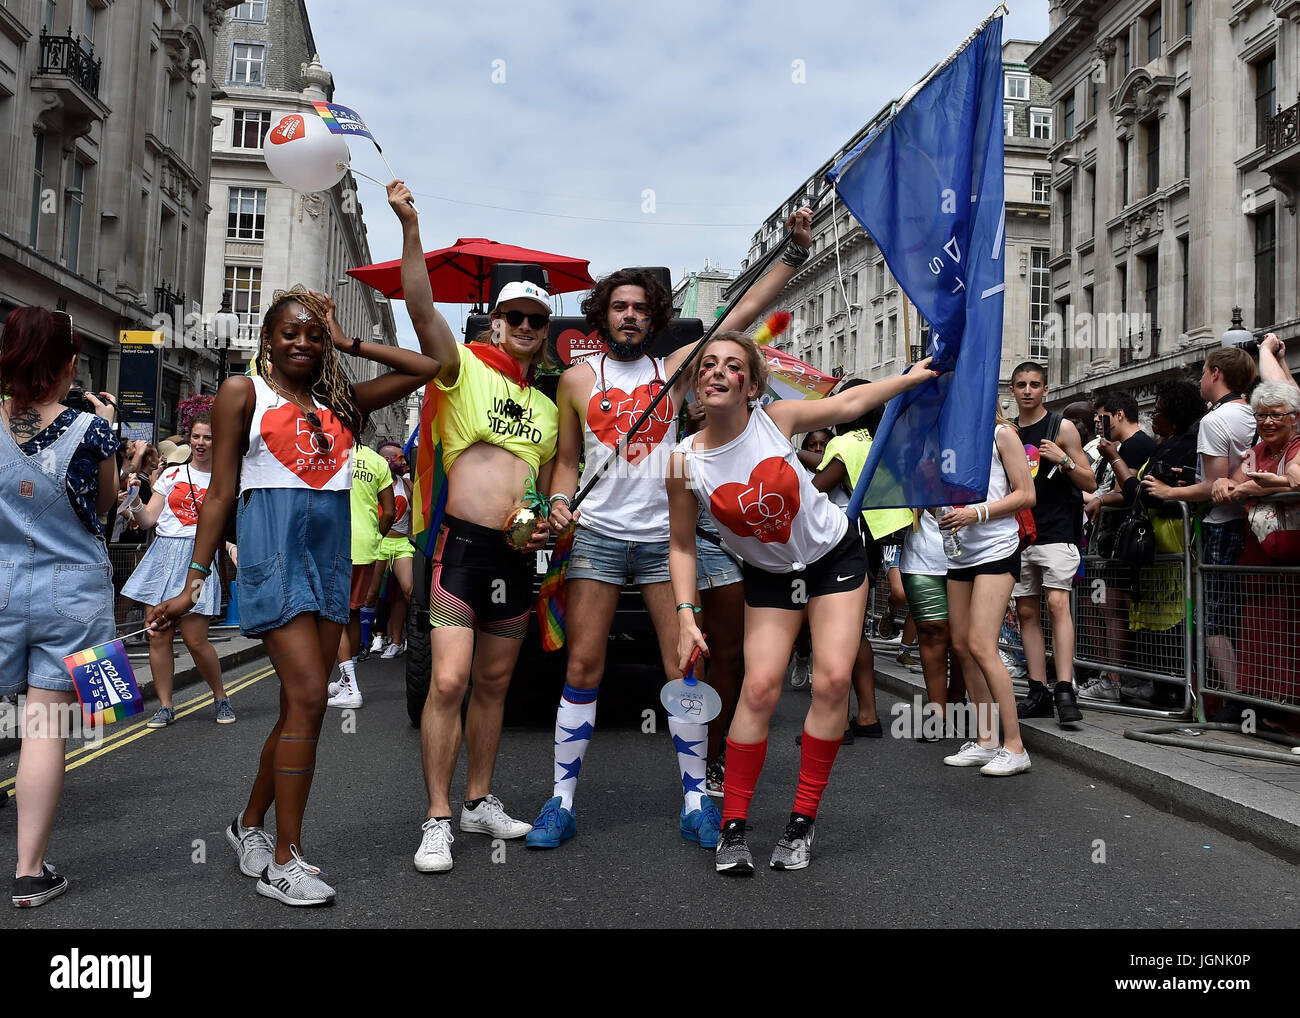 London, UK. 08th July, 2017. Workers from 56 Dean Street during Pride In London on Saturday. Photo : Taka G Wu Credit: - Stock Image